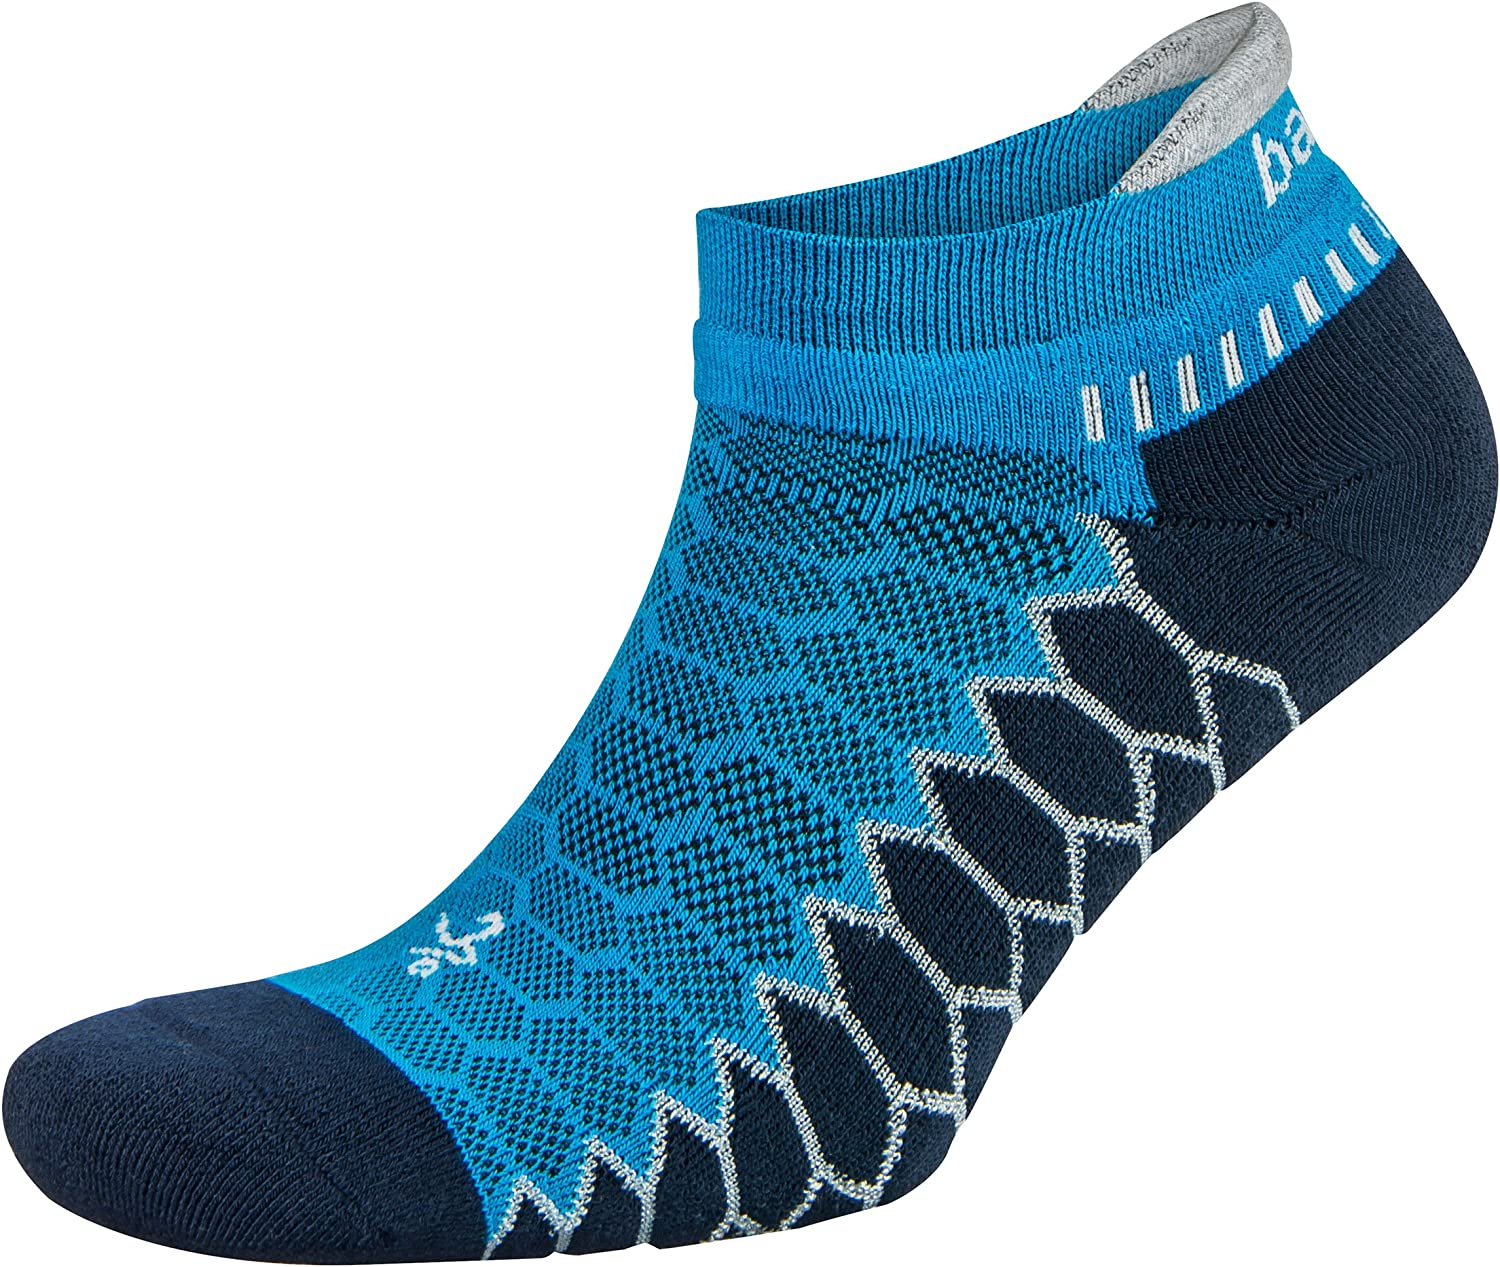 1 Pair Balega Silver Antimicrobial No-Show Compression-Fit Running Socks for Men and Women